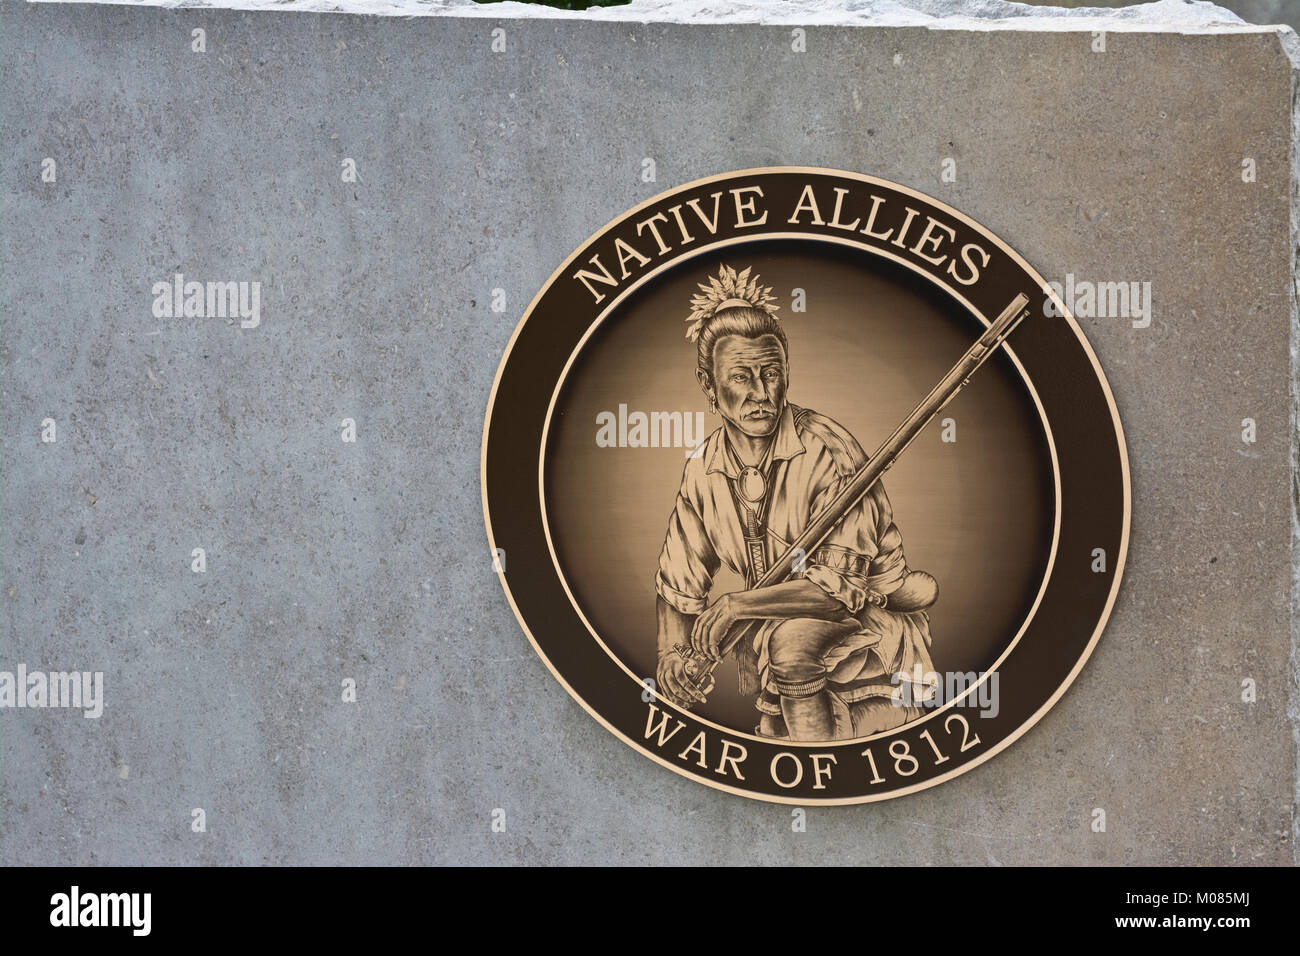 One of the commemorative plaques recognizing the contribution of First Nations peoples (Native Allies) in the War - Stock Image